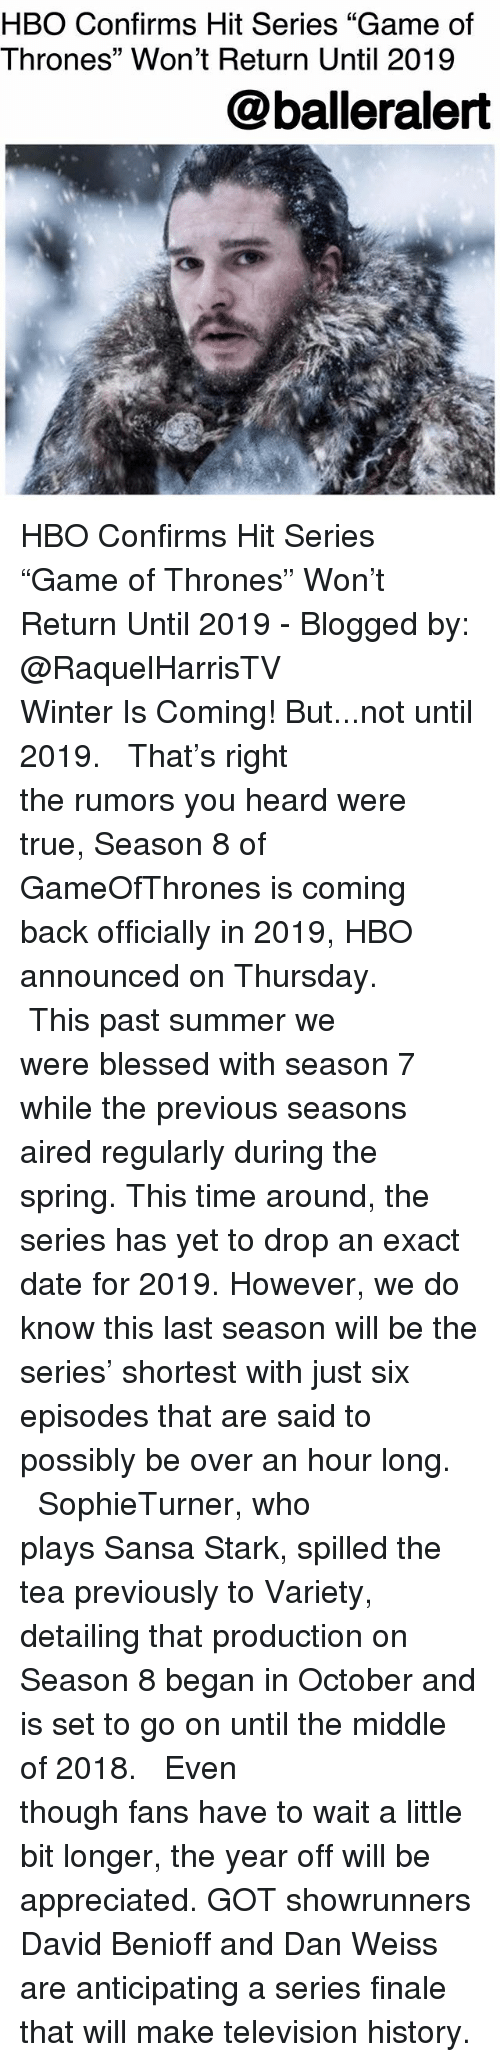 """Blessed, Game of Thrones, and Hbo: HBO Confirms Hit Series """"Game of  Thrones"""" Won't Return Until 2019  @balleralert HBO Confirms Hit Series """"Game of Thrones"""" Won't Return Until 2019 - Blogged by: @RaquelHarrisTV ⠀⠀⠀⠀⠀⠀⠀⠀⠀ ⠀⠀⠀⠀⠀⠀⠀⠀⠀ Winter Is Coming! But...not until 2019. ⠀⠀⠀⠀⠀⠀⠀⠀⠀ ⠀⠀⠀⠀⠀⠀⠀⠀⠀ That's right the rumors you heard were true, Season 8 of GameOfThrones is coming back officially in 2019, HBO announced on Thursday. ⠀⠀⠀⠀⠀⠀⠀⠀⠀ ⠀⠀⠀⠀⠀⠀⠀⠀⠀ This past summer we were blessed with season 7 while the previous seasons aired regularly during the spring. This time around, the series has yet to drop an exact date for 2019. However, we do know this last season will be the series' shortest with just six episodes that are said to possibly be over an hour long. ⠀⠀⠀⠀⠀⠀⠀⠀⠀ ⠀⠀⠀⠀⠀⠀⠀⠀⠀ SophieTurner, who plays Sansa Stark, spilled the tea previously to Variety, detailing that production on Season 8 began in October and is set to go on until the middle of 2018. ⠀⠀⠀⠀⠀⠀⠀⠀⠀ ⠀⠀⠀⠀⠀⠀⠀⠀⠀ Even though fans have to wait a little bit longer, the year off will be appreciated. GOT showrunners David Benioff and Dan Weiss are anticipating a series finale that will make television history."""